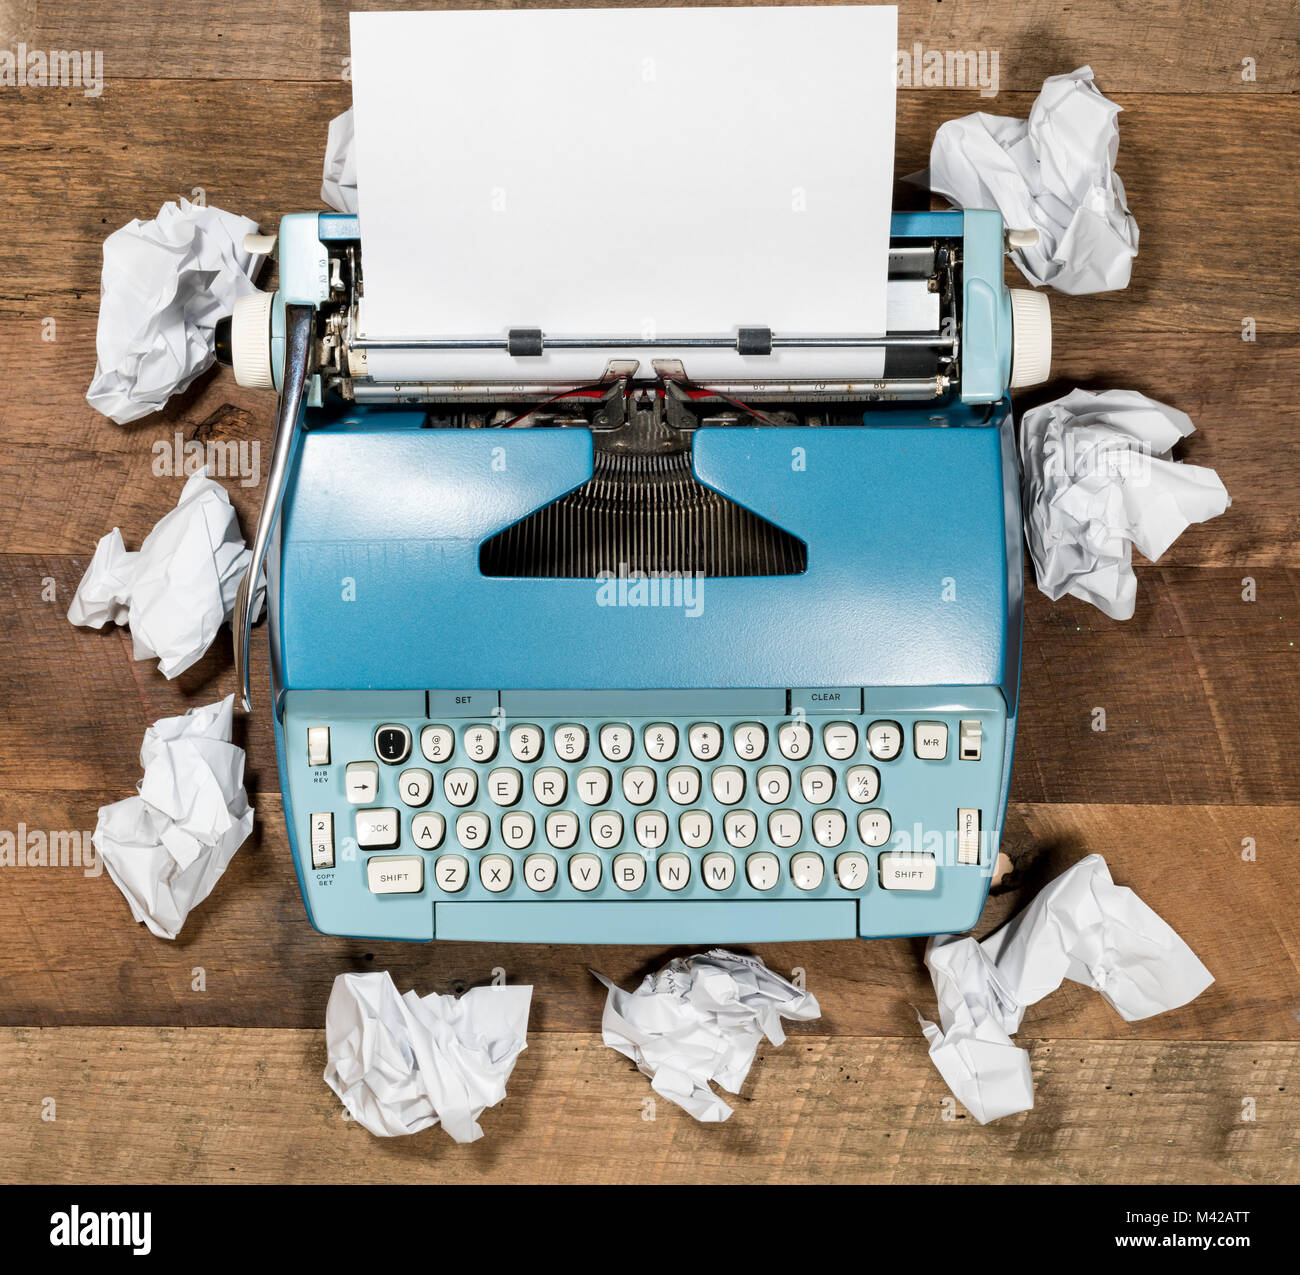 Old electric typewriter for novel with many failed attempts - Stock Image